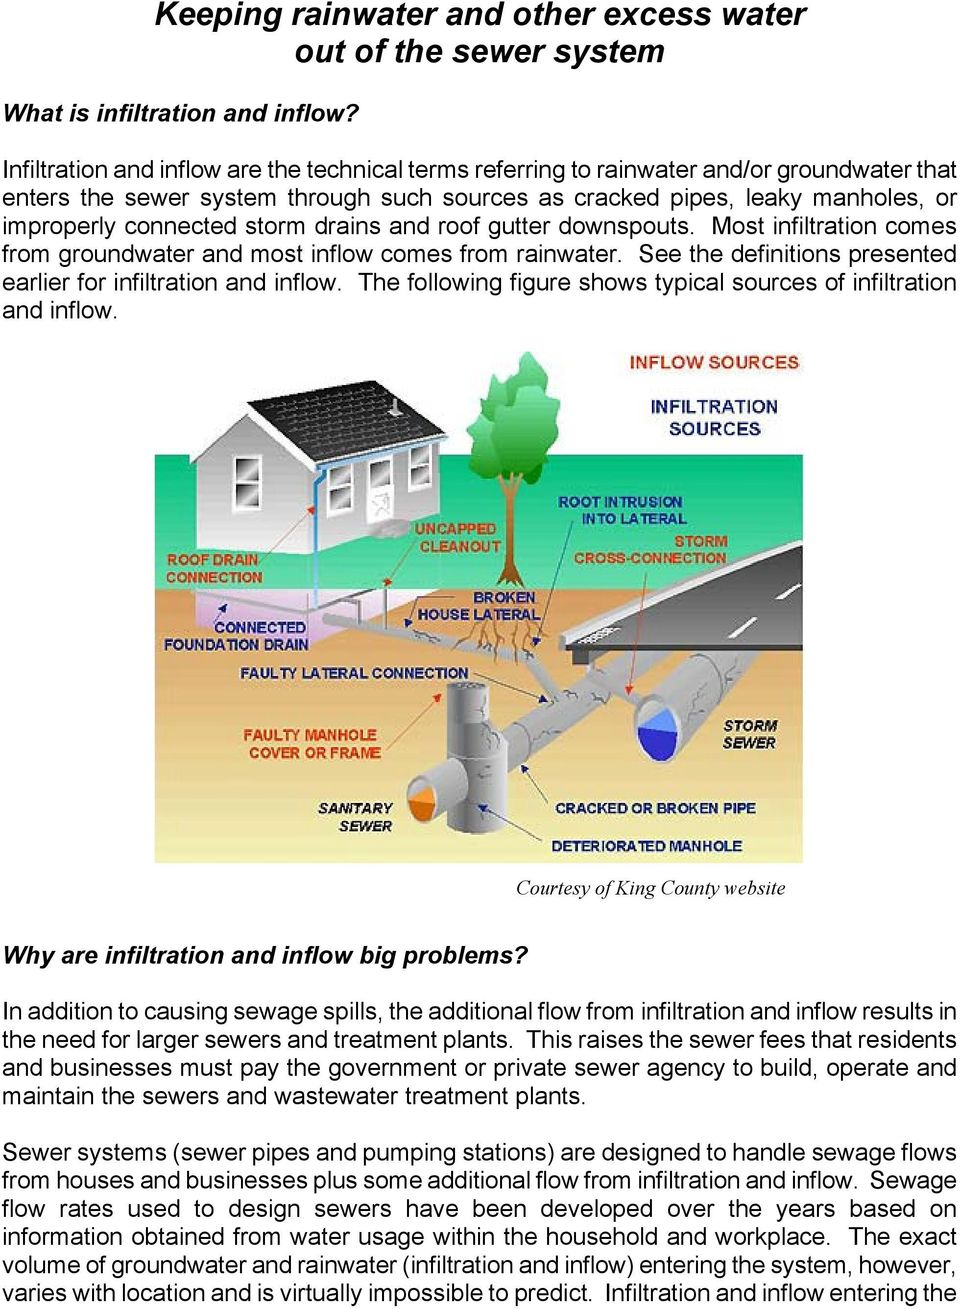 storm drains and roof gutter downspouts. Most infiltration comes from groundwater and most inflow comes from rainwater. See the definitions presented earlier for infiltration and inflow.